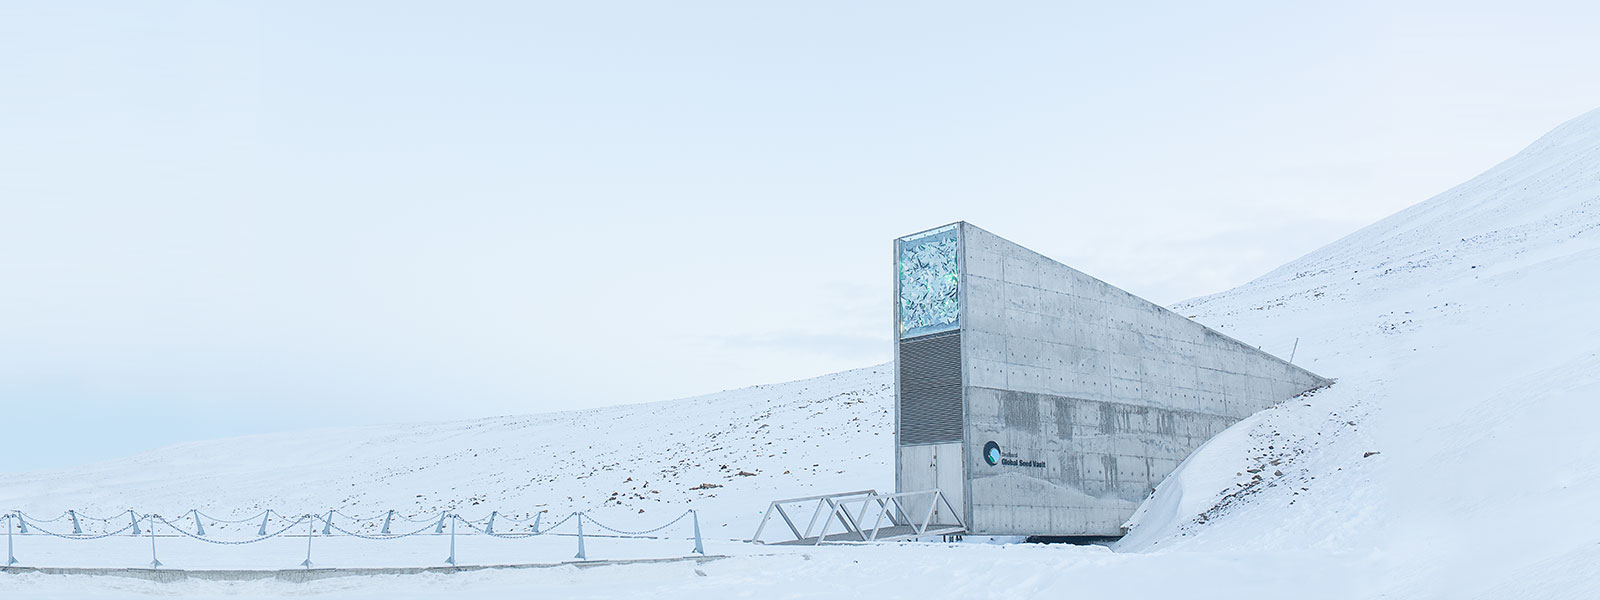 Seed vault of california